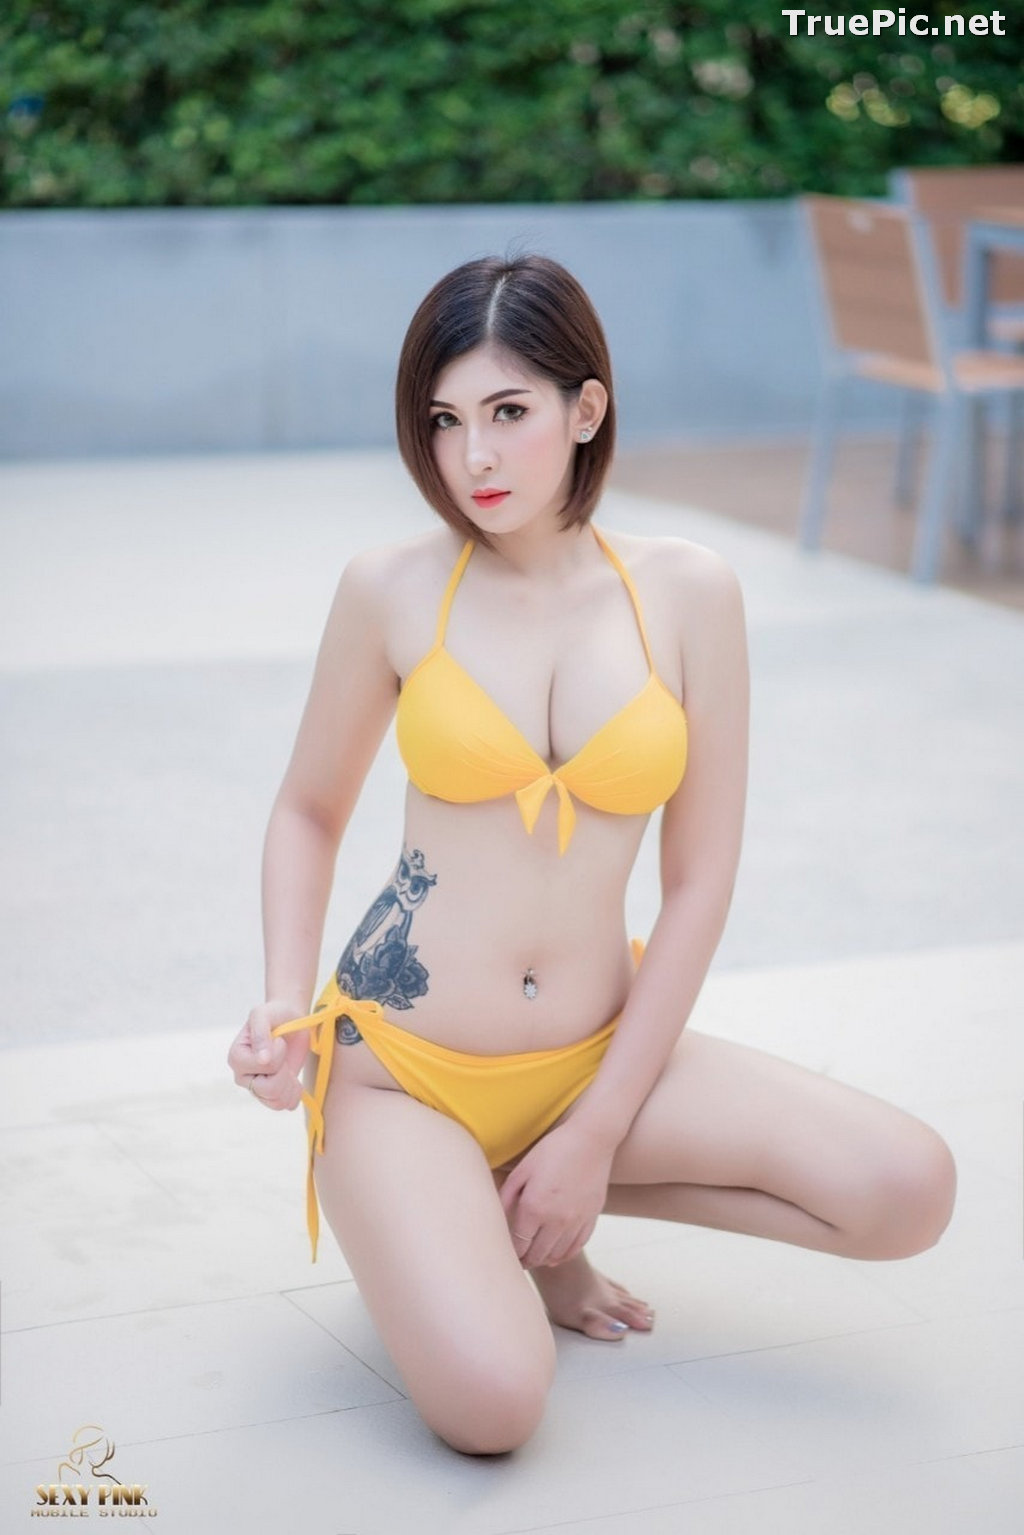 Image Thailand Model - Pharada Baokhum - Yellow Bikini In The Swimming Pool - TruePic.net - Picture-6